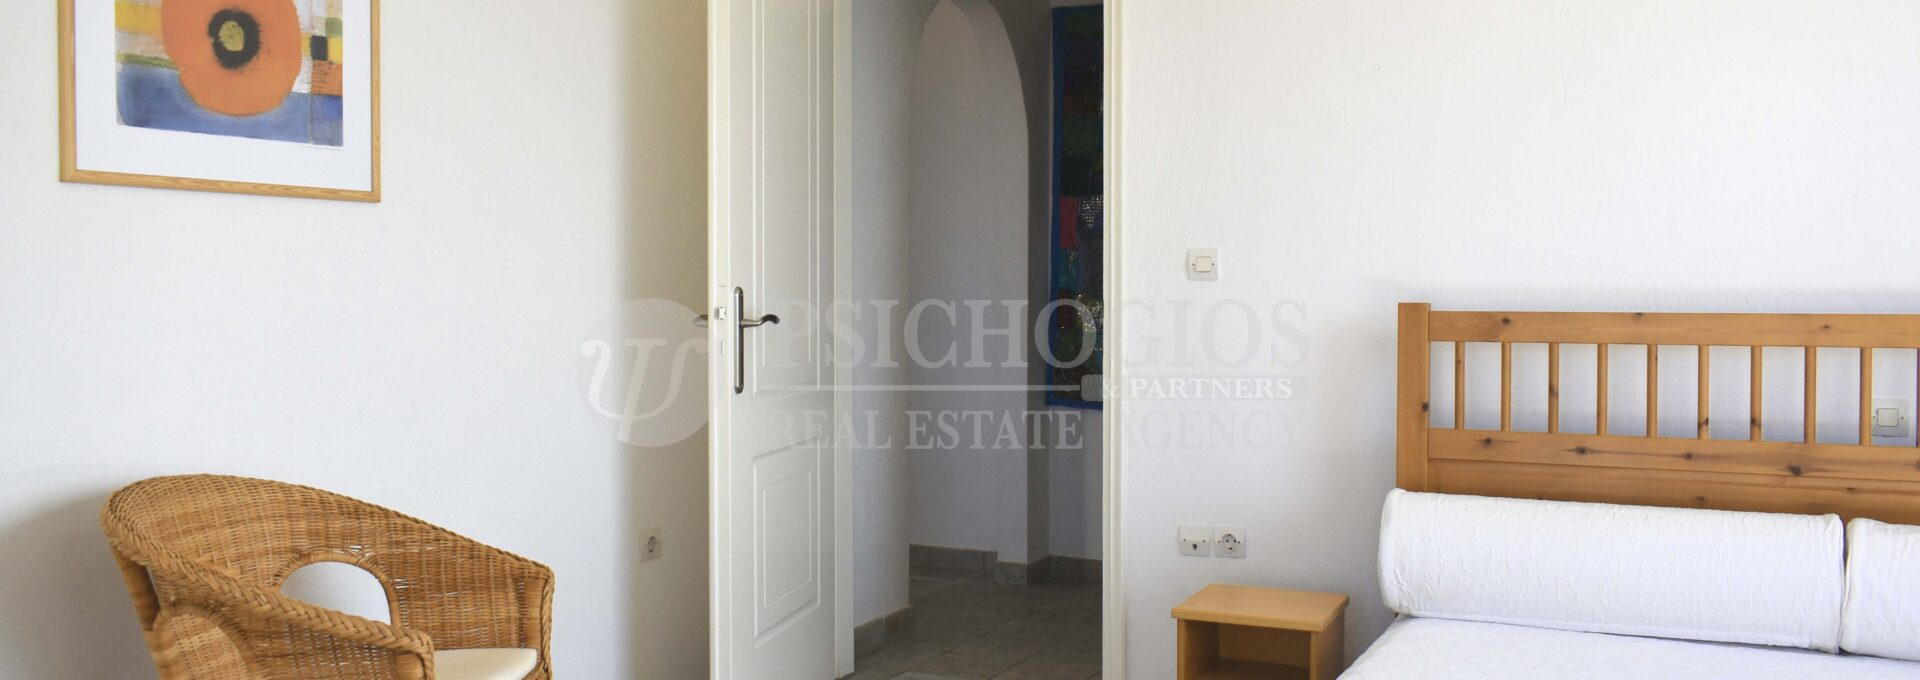 for_sale_house_223_square_meters_plot_730_square_meters_view_to_the_sea_ermioni_greece (14)